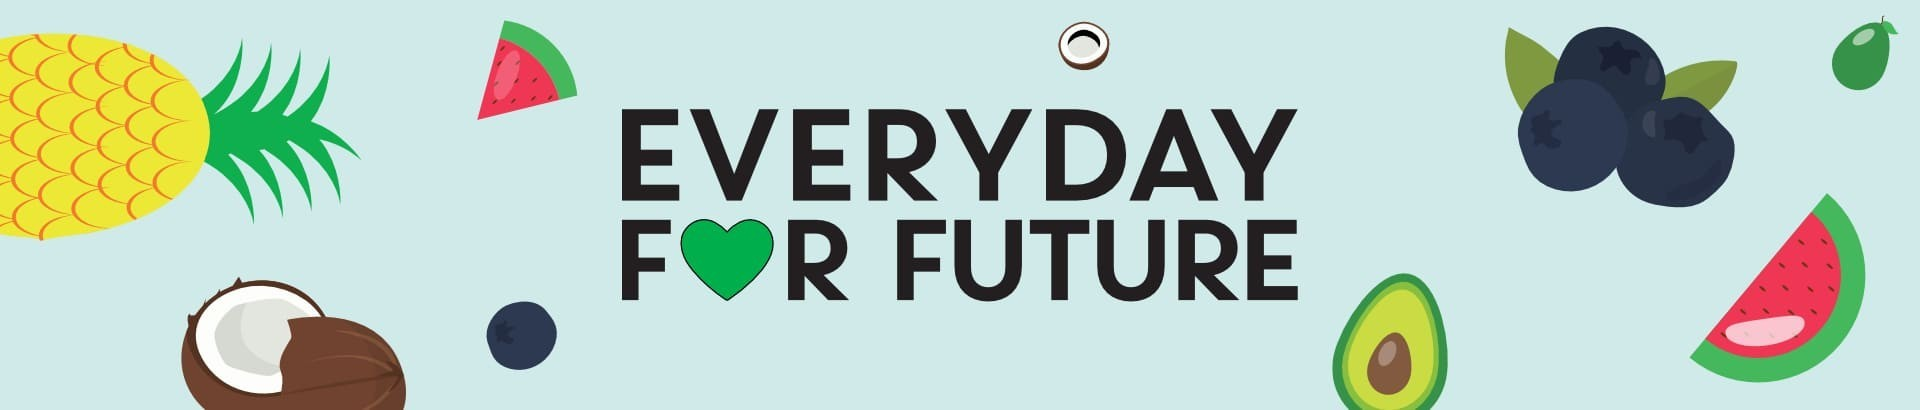 EVERYDAY FOR FUTURE